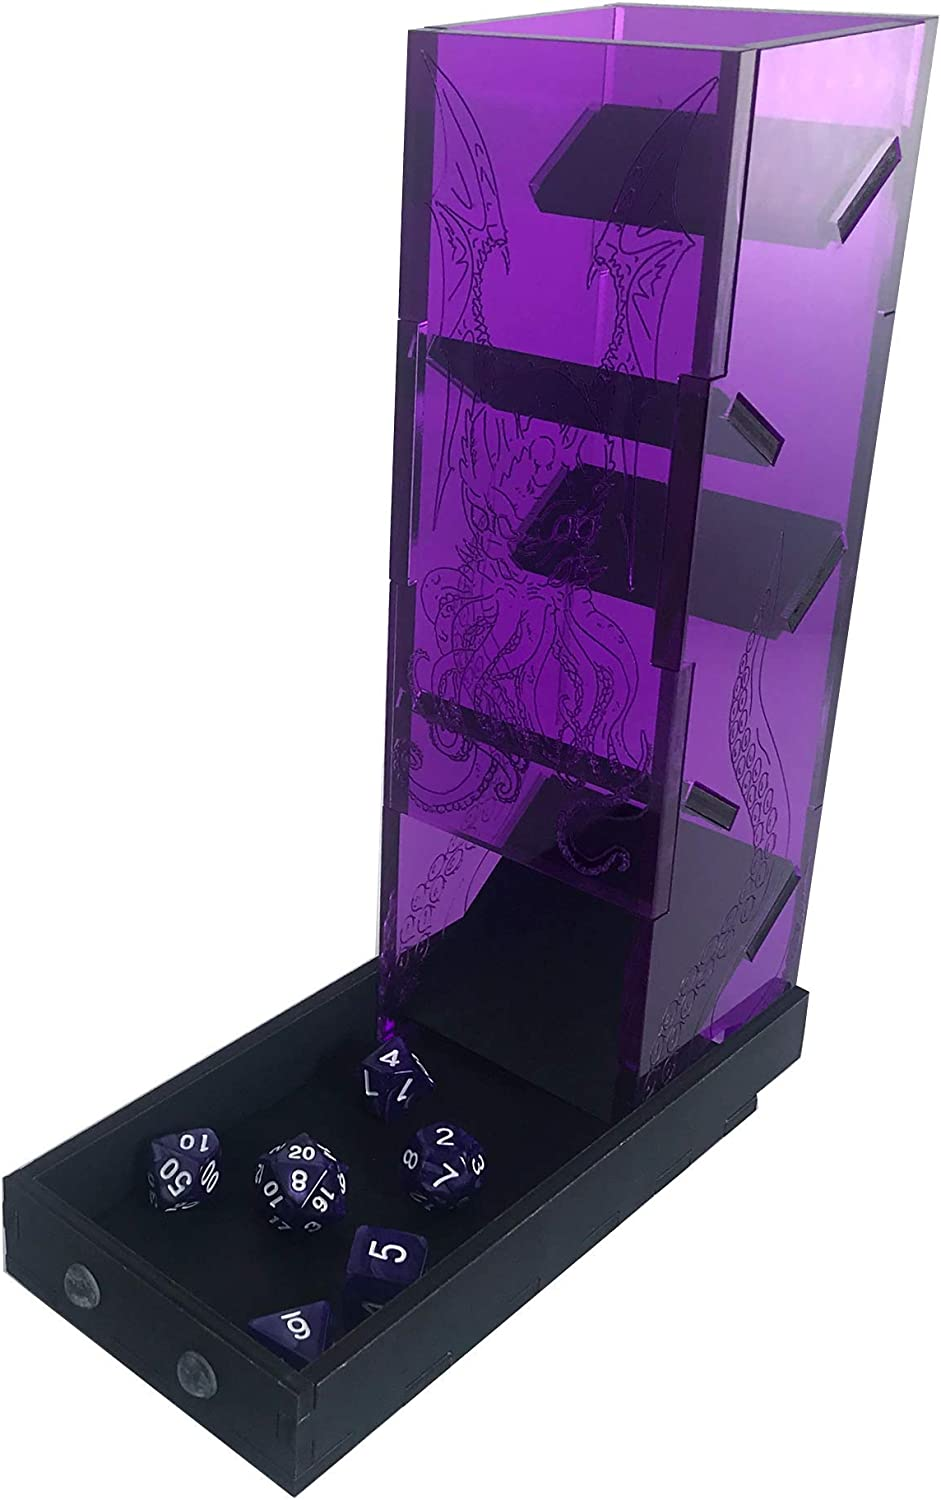 C4Labs Cthulhu Etched Dice Tower for Lovecraft Fans Purple Acrylic Purple Acrylic